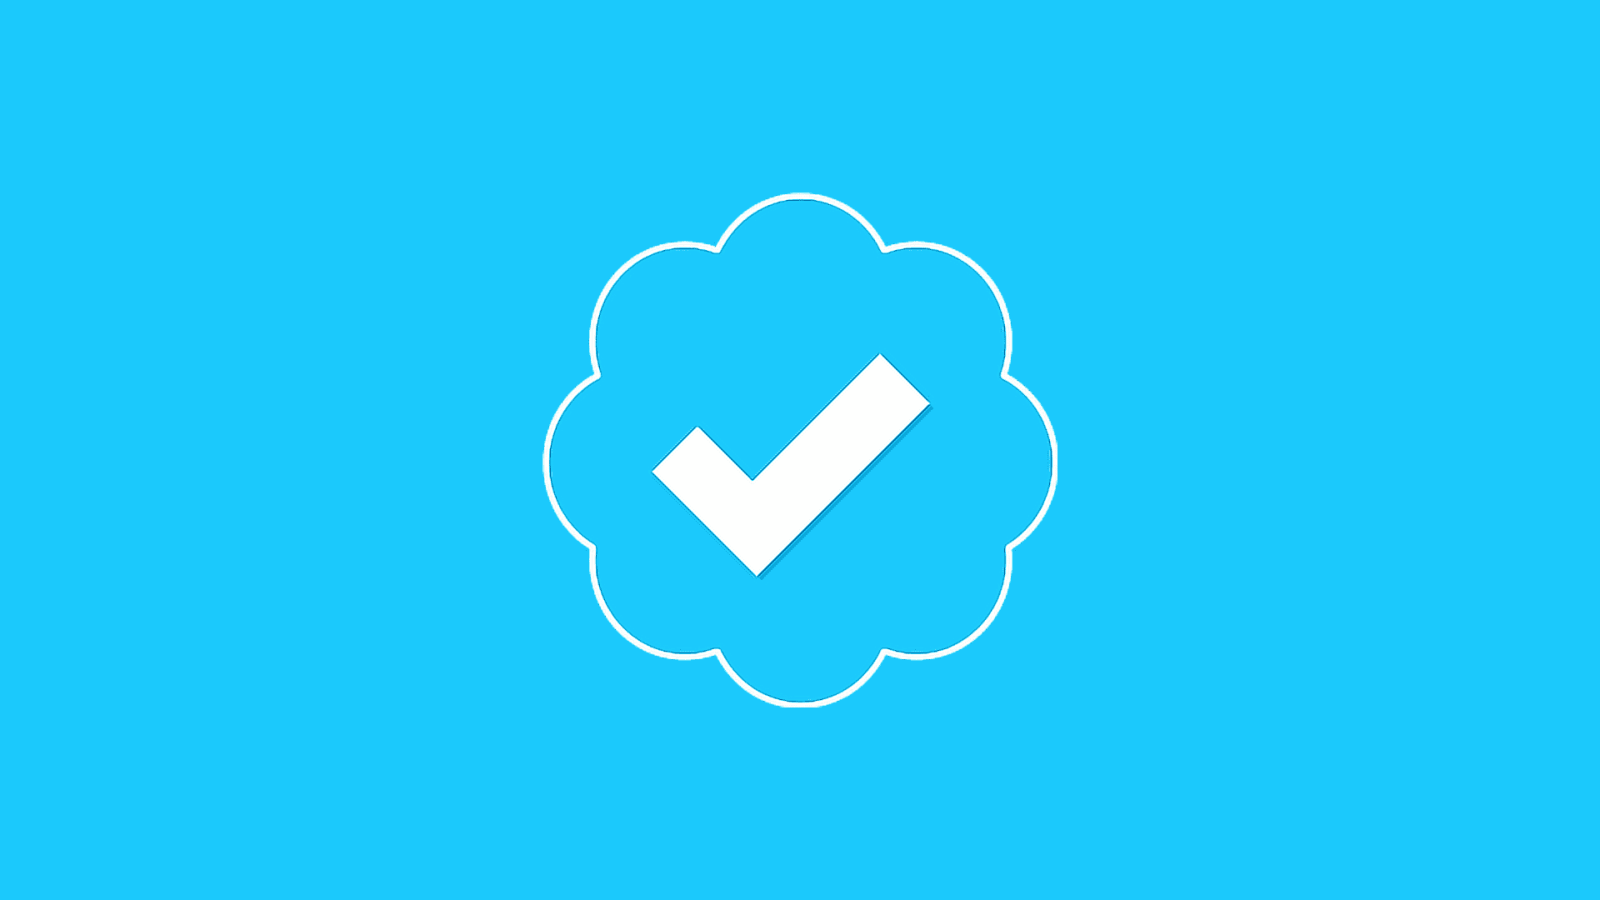 Twitter officially plan to relaunch the verification process